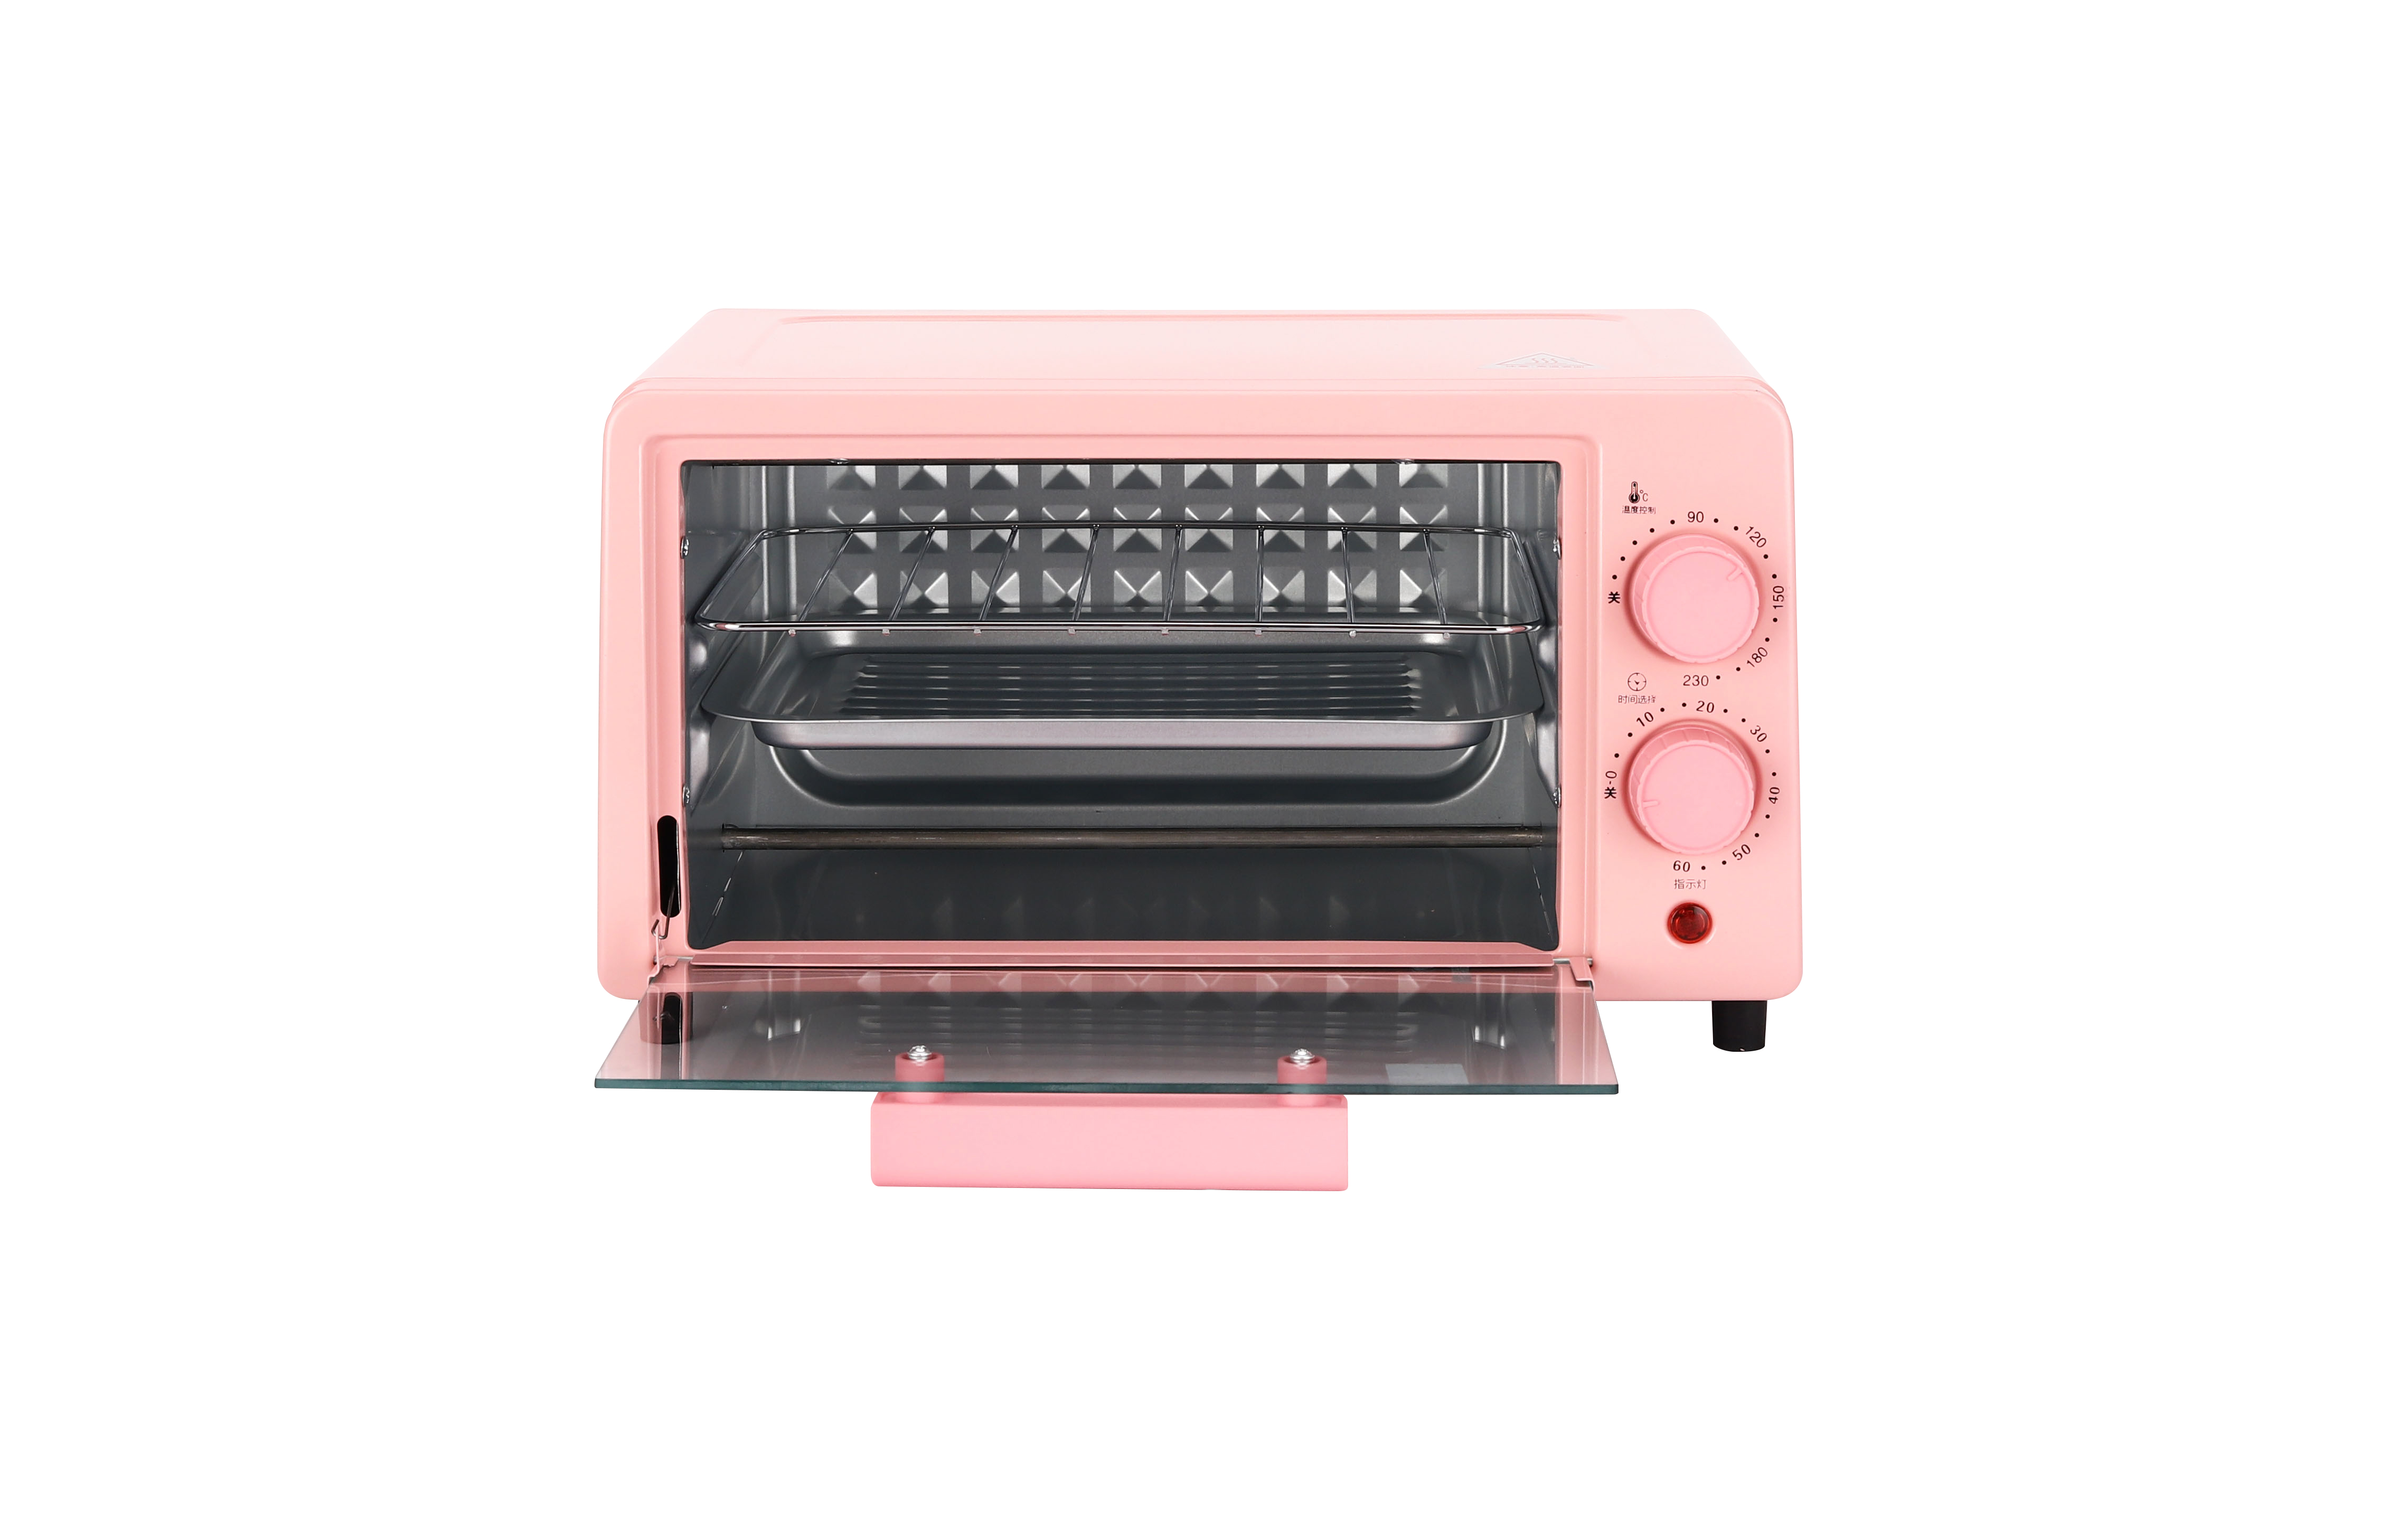 Mini pink oven Electric 12L  large Bake Benchtop Hot Plate Rotisserie For Family or Commercial